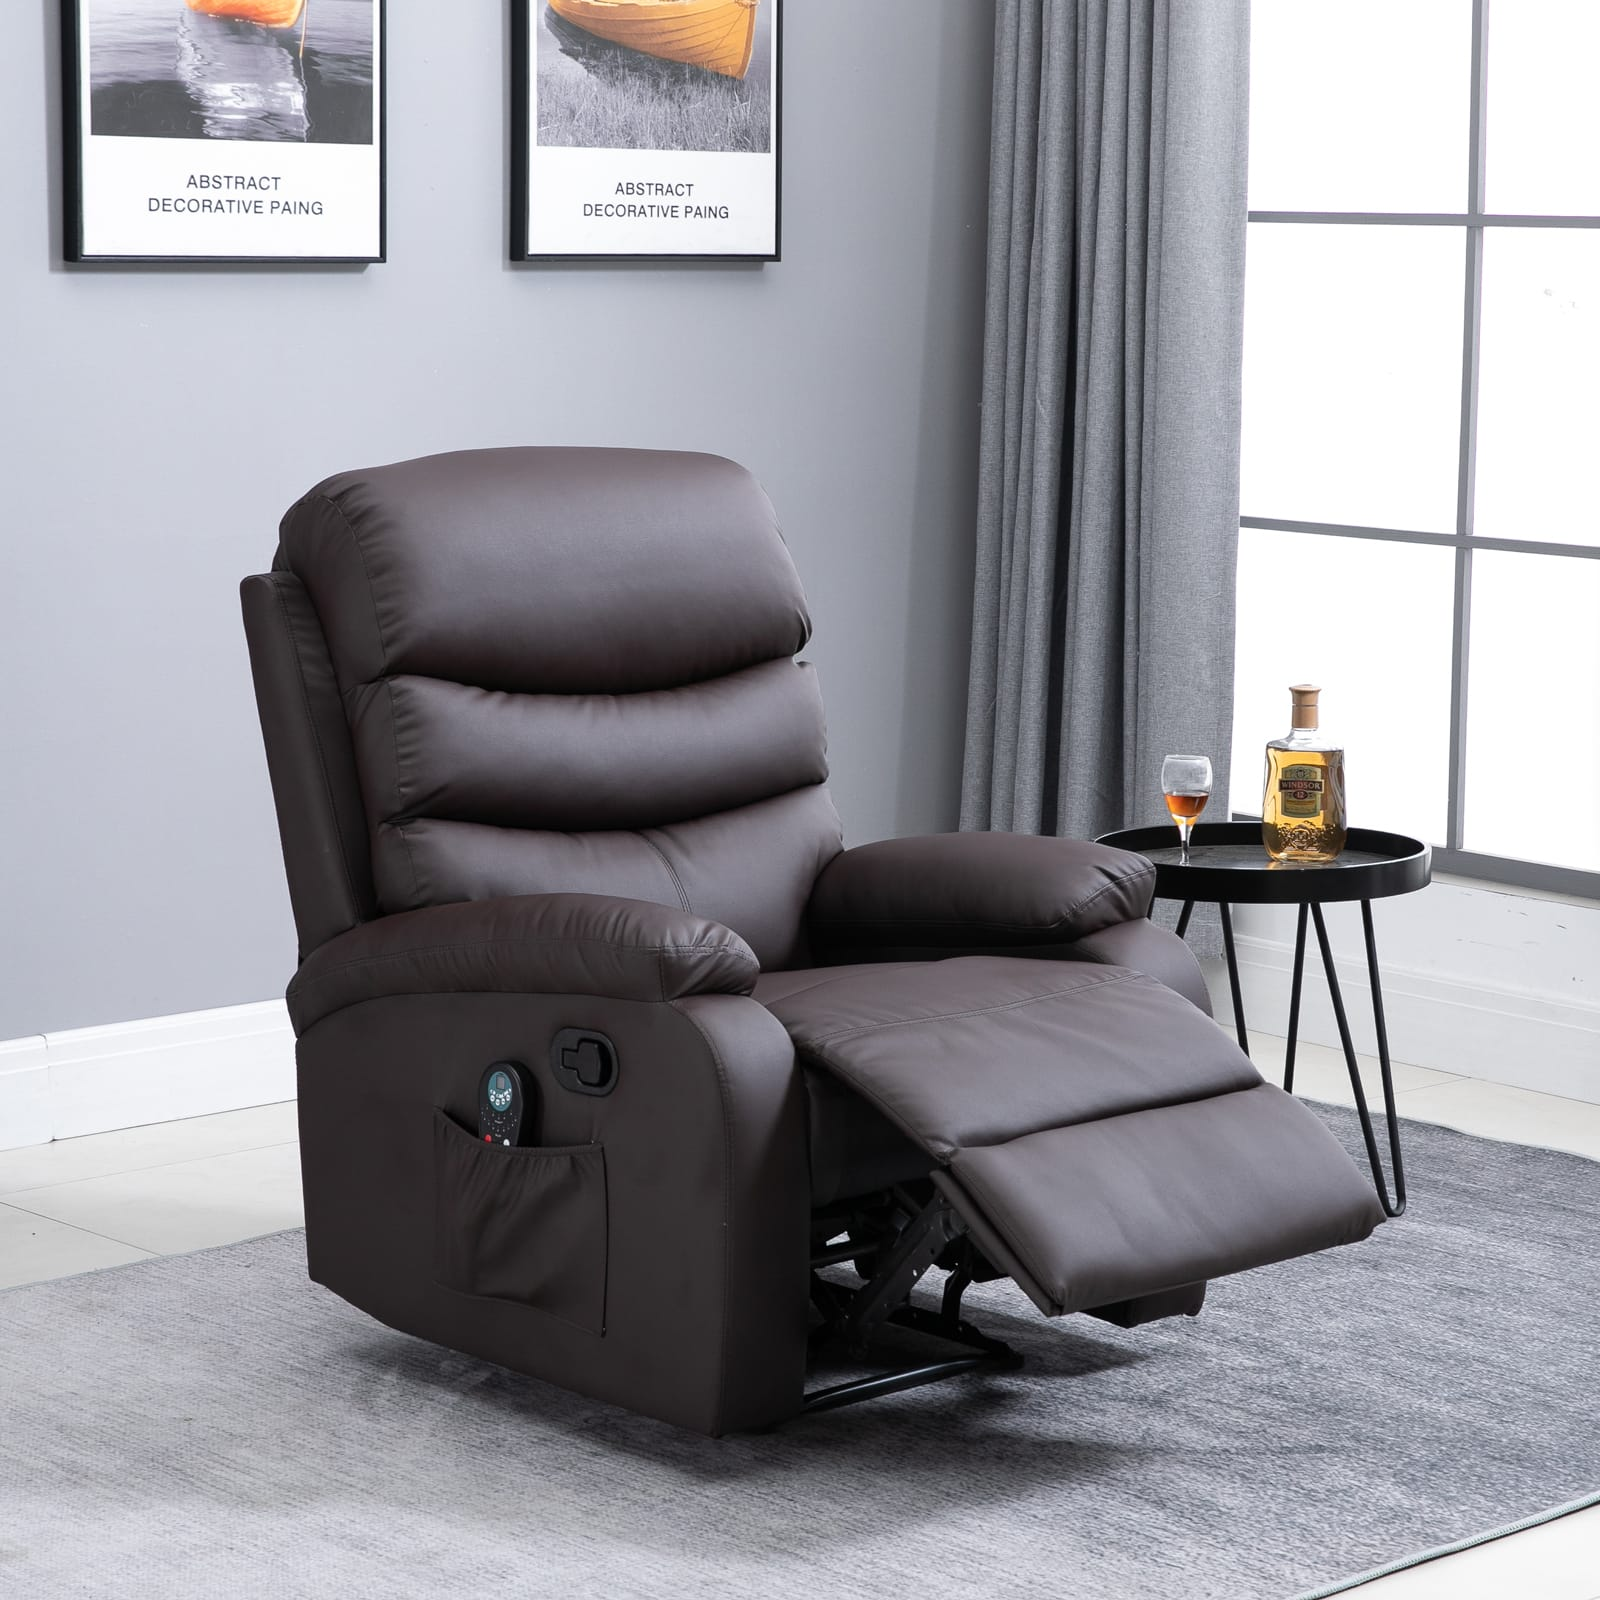 HOMCOM Massage Recliner Chair with Heat and 8 Massaging Points - $249.99 + Free Shipping